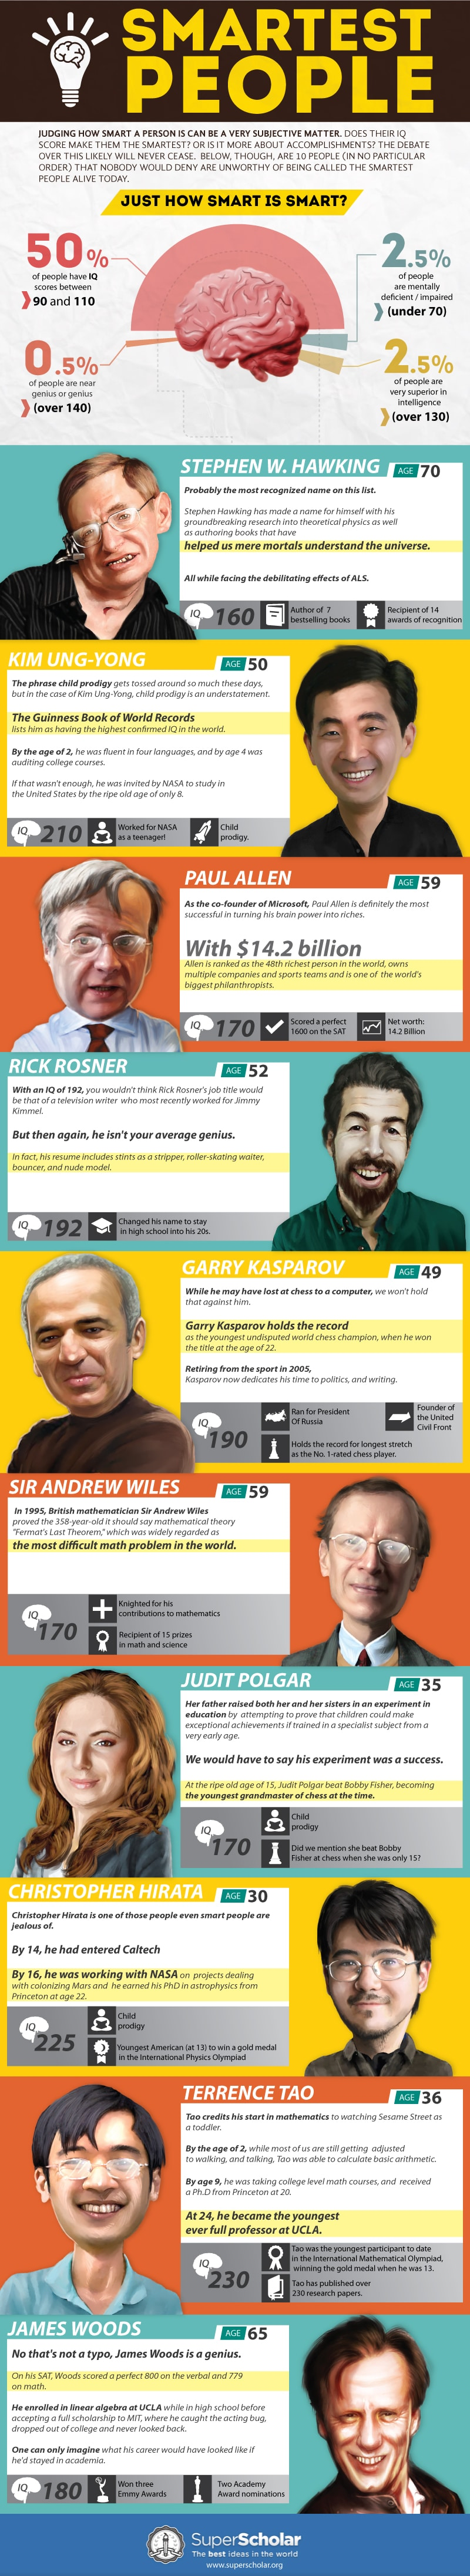 Top 10 Smartest People Alive Today [Infographic]